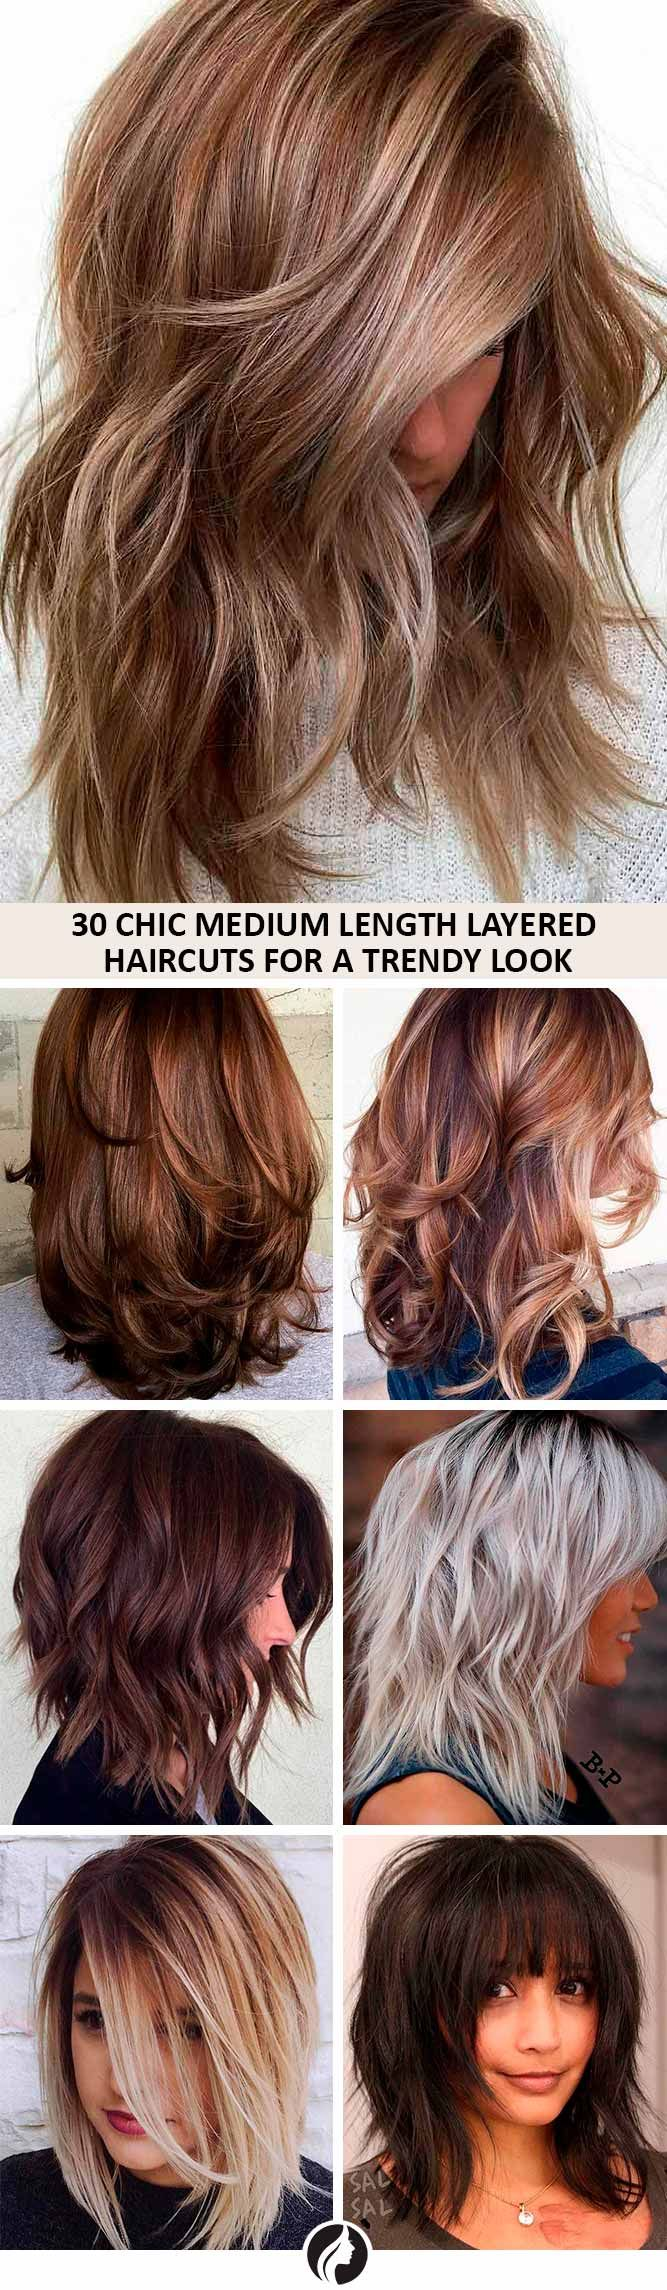 Todays Hairstyles For Medium Length Hair real simple hairstyle